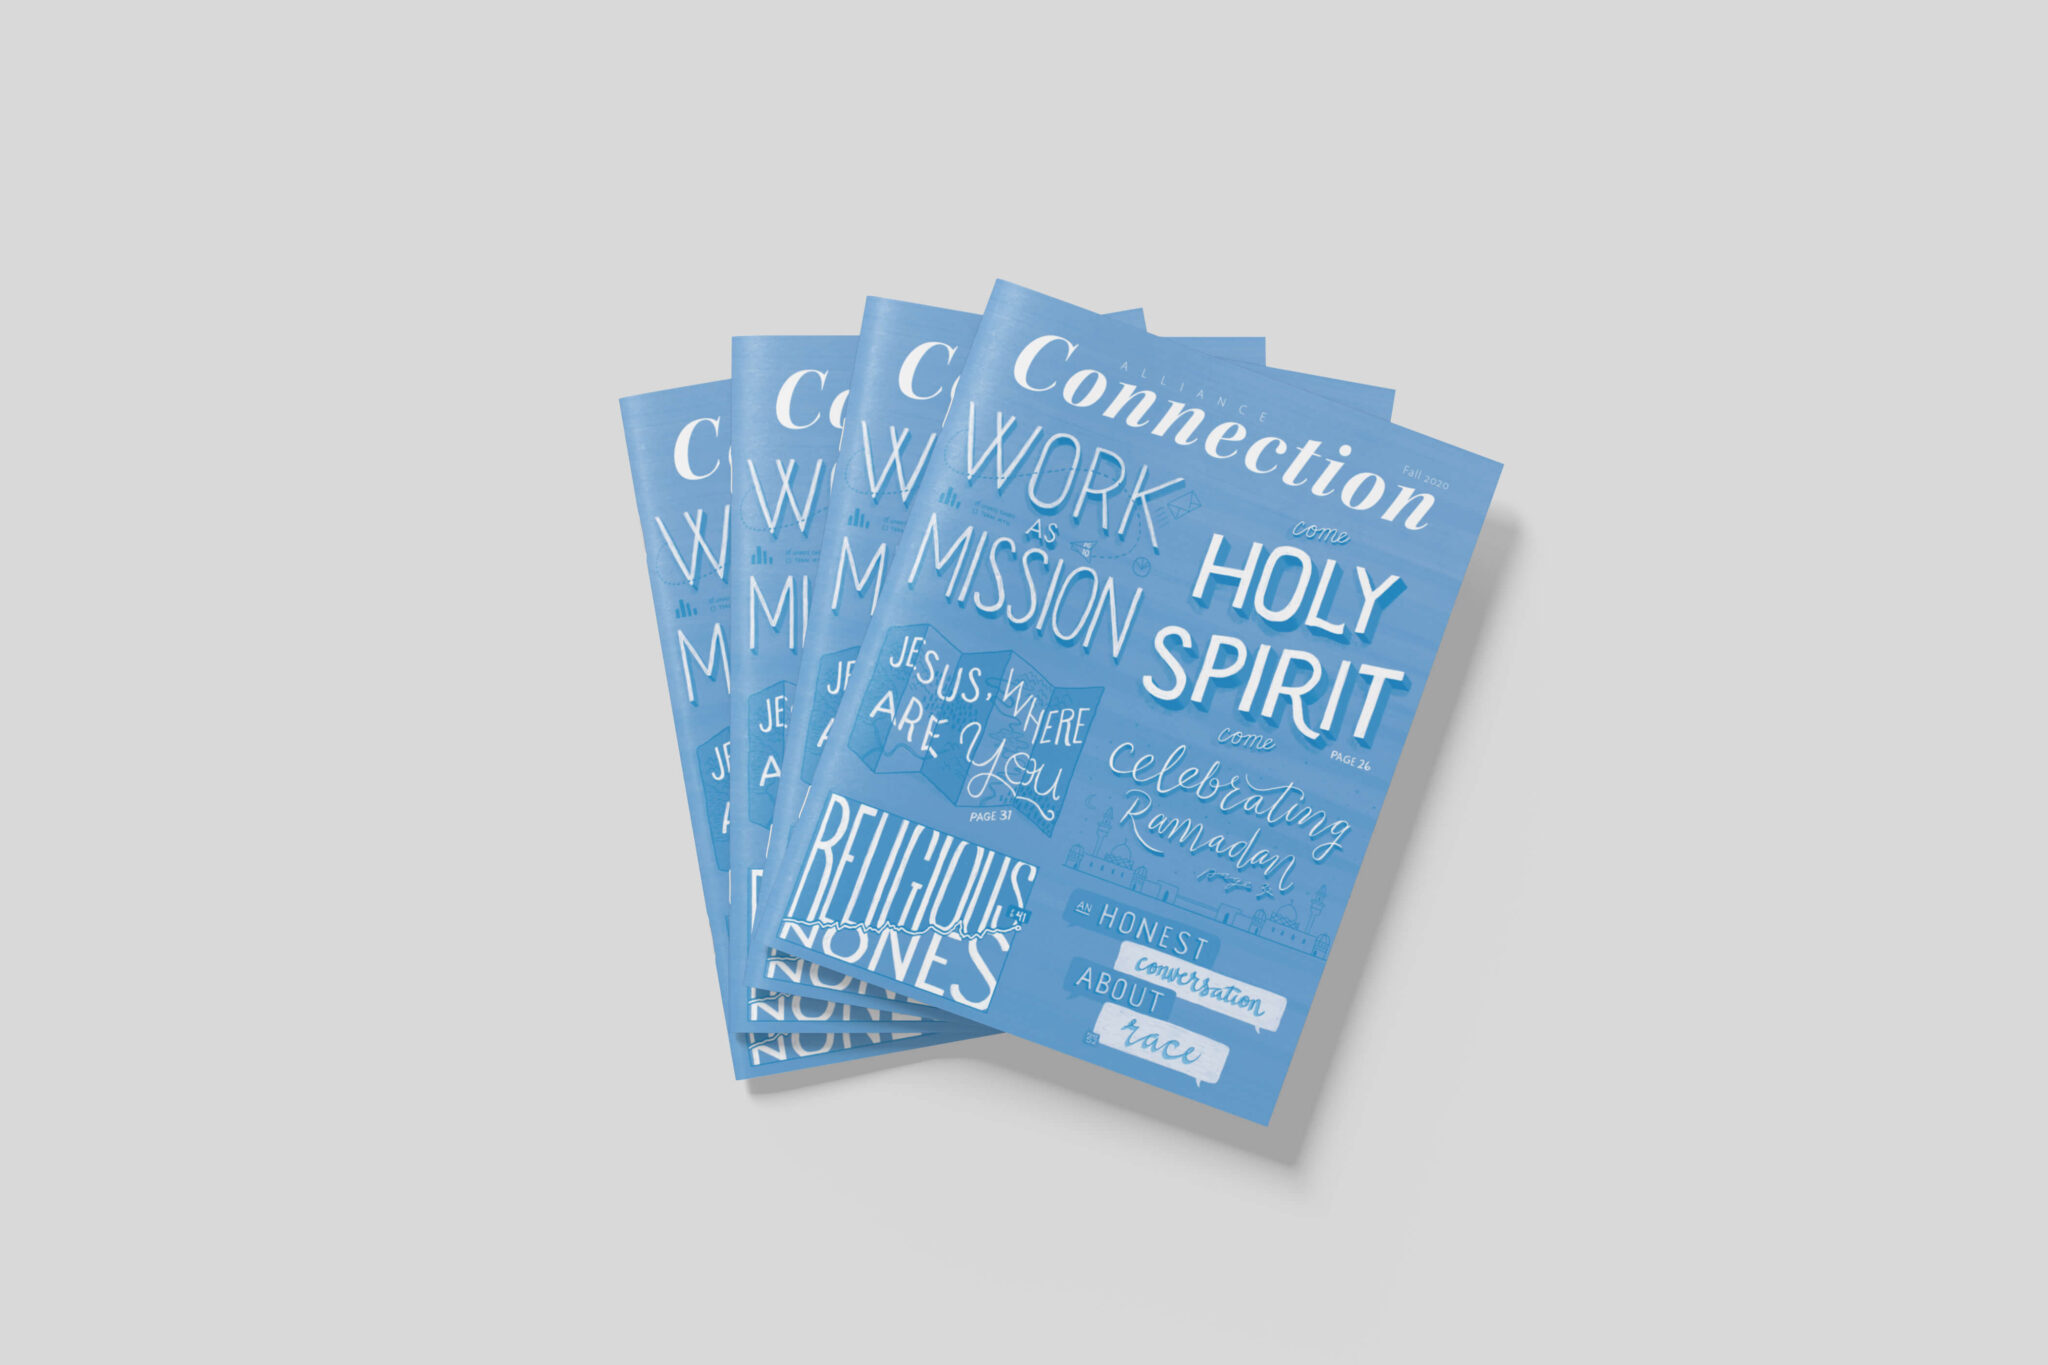 Four Alliance Connection magazines are fanned out